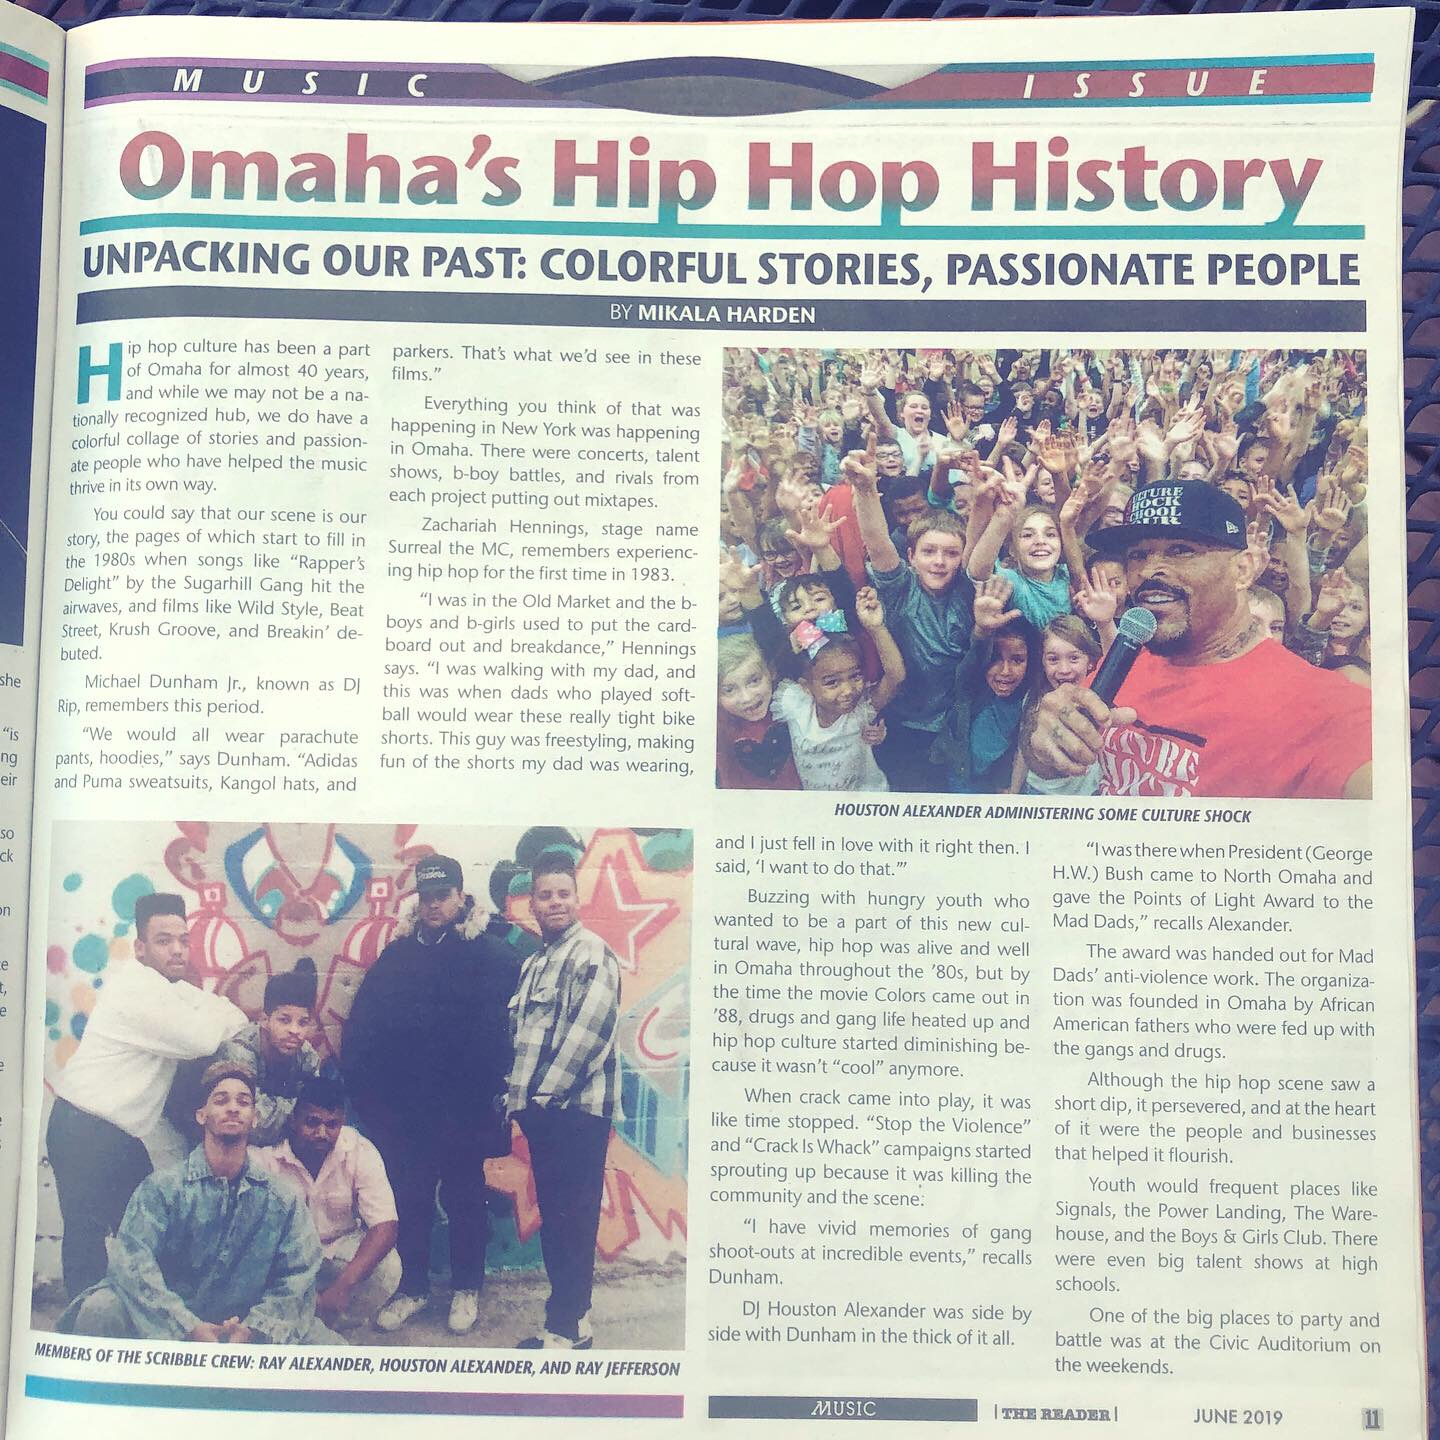 Omaha's Hip Hop History: Unpacking Our Past